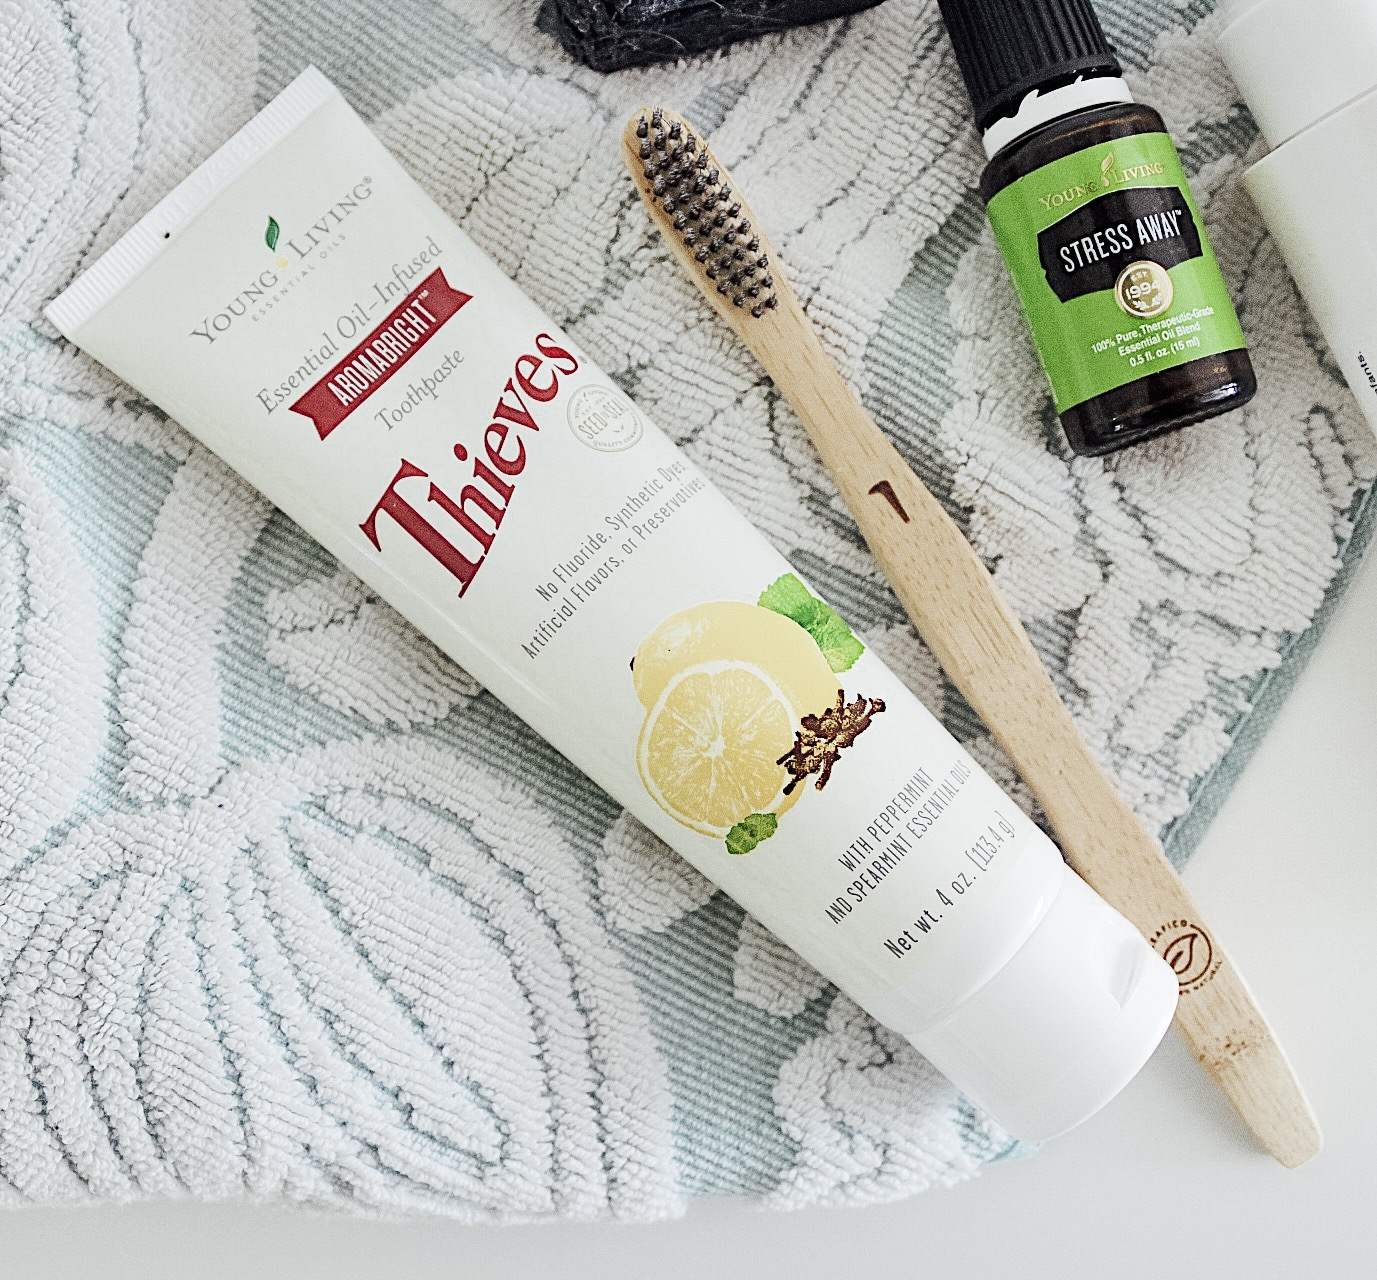 All Natural Morning Routine Must Haves